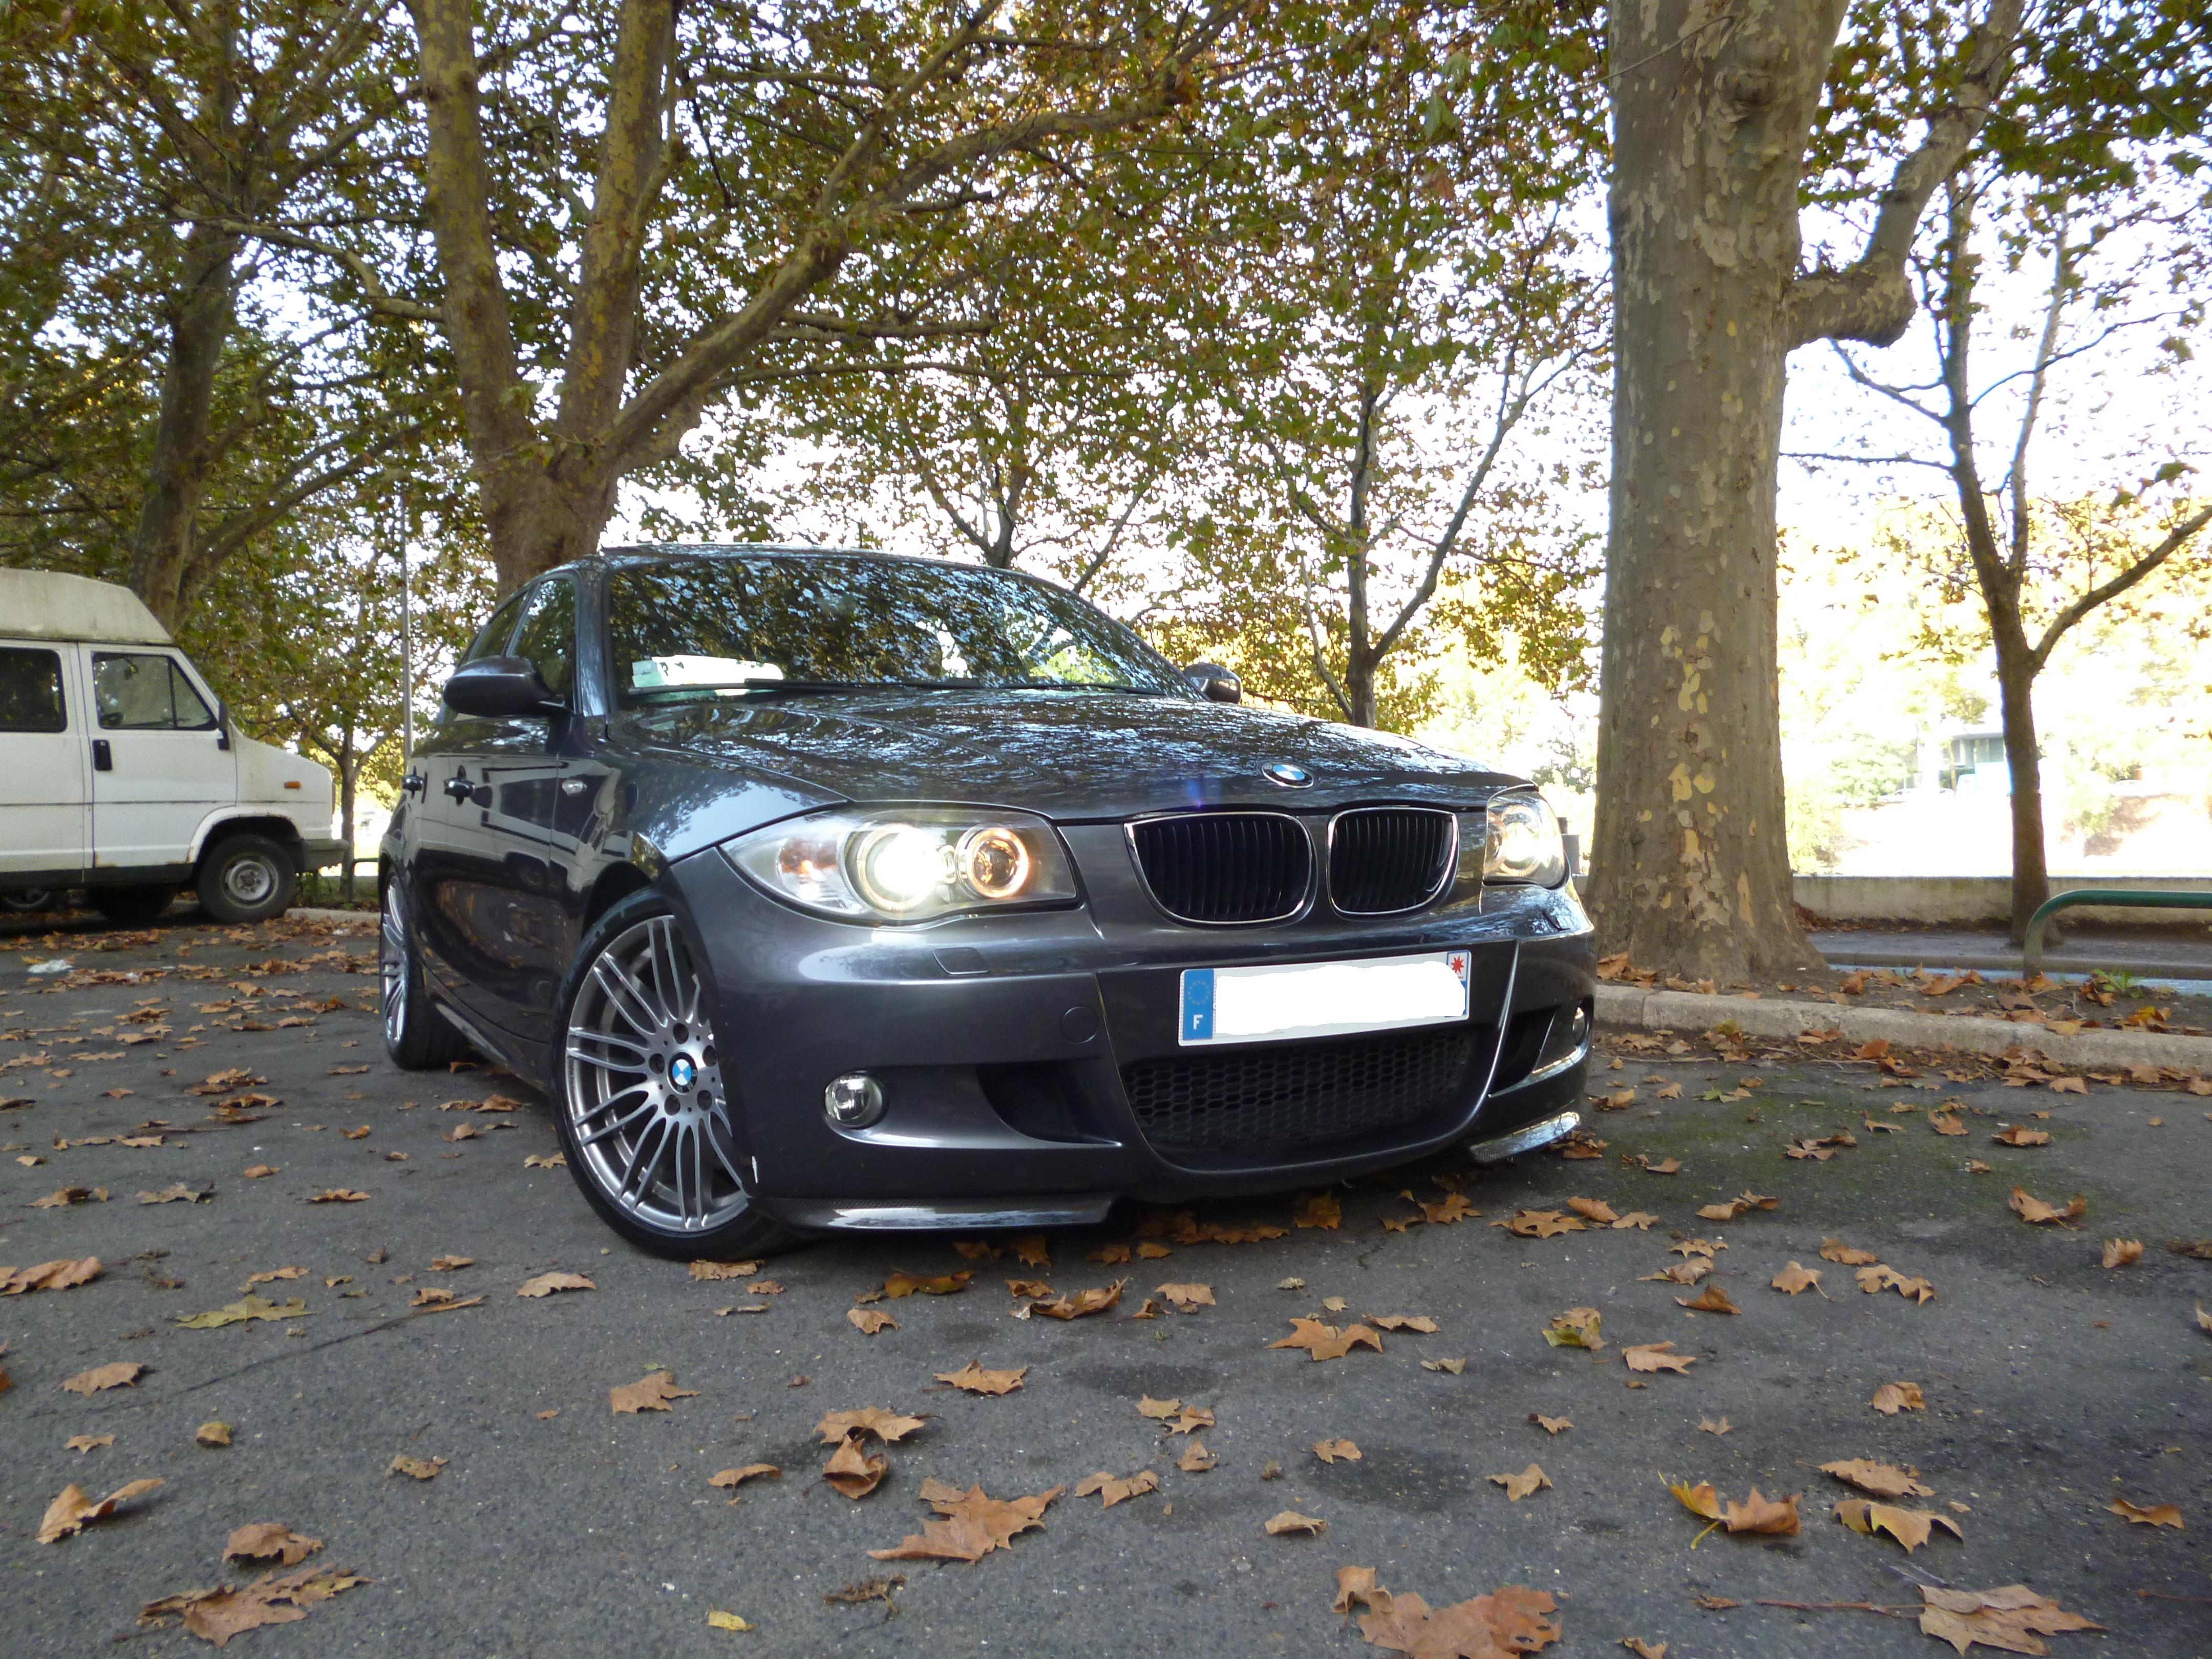 bmw sport zobacz temat kimboax bmw e87 130d swap n57 335km 693nm str 5. Black Bedroom Furniture Sets. Home Design Ideas